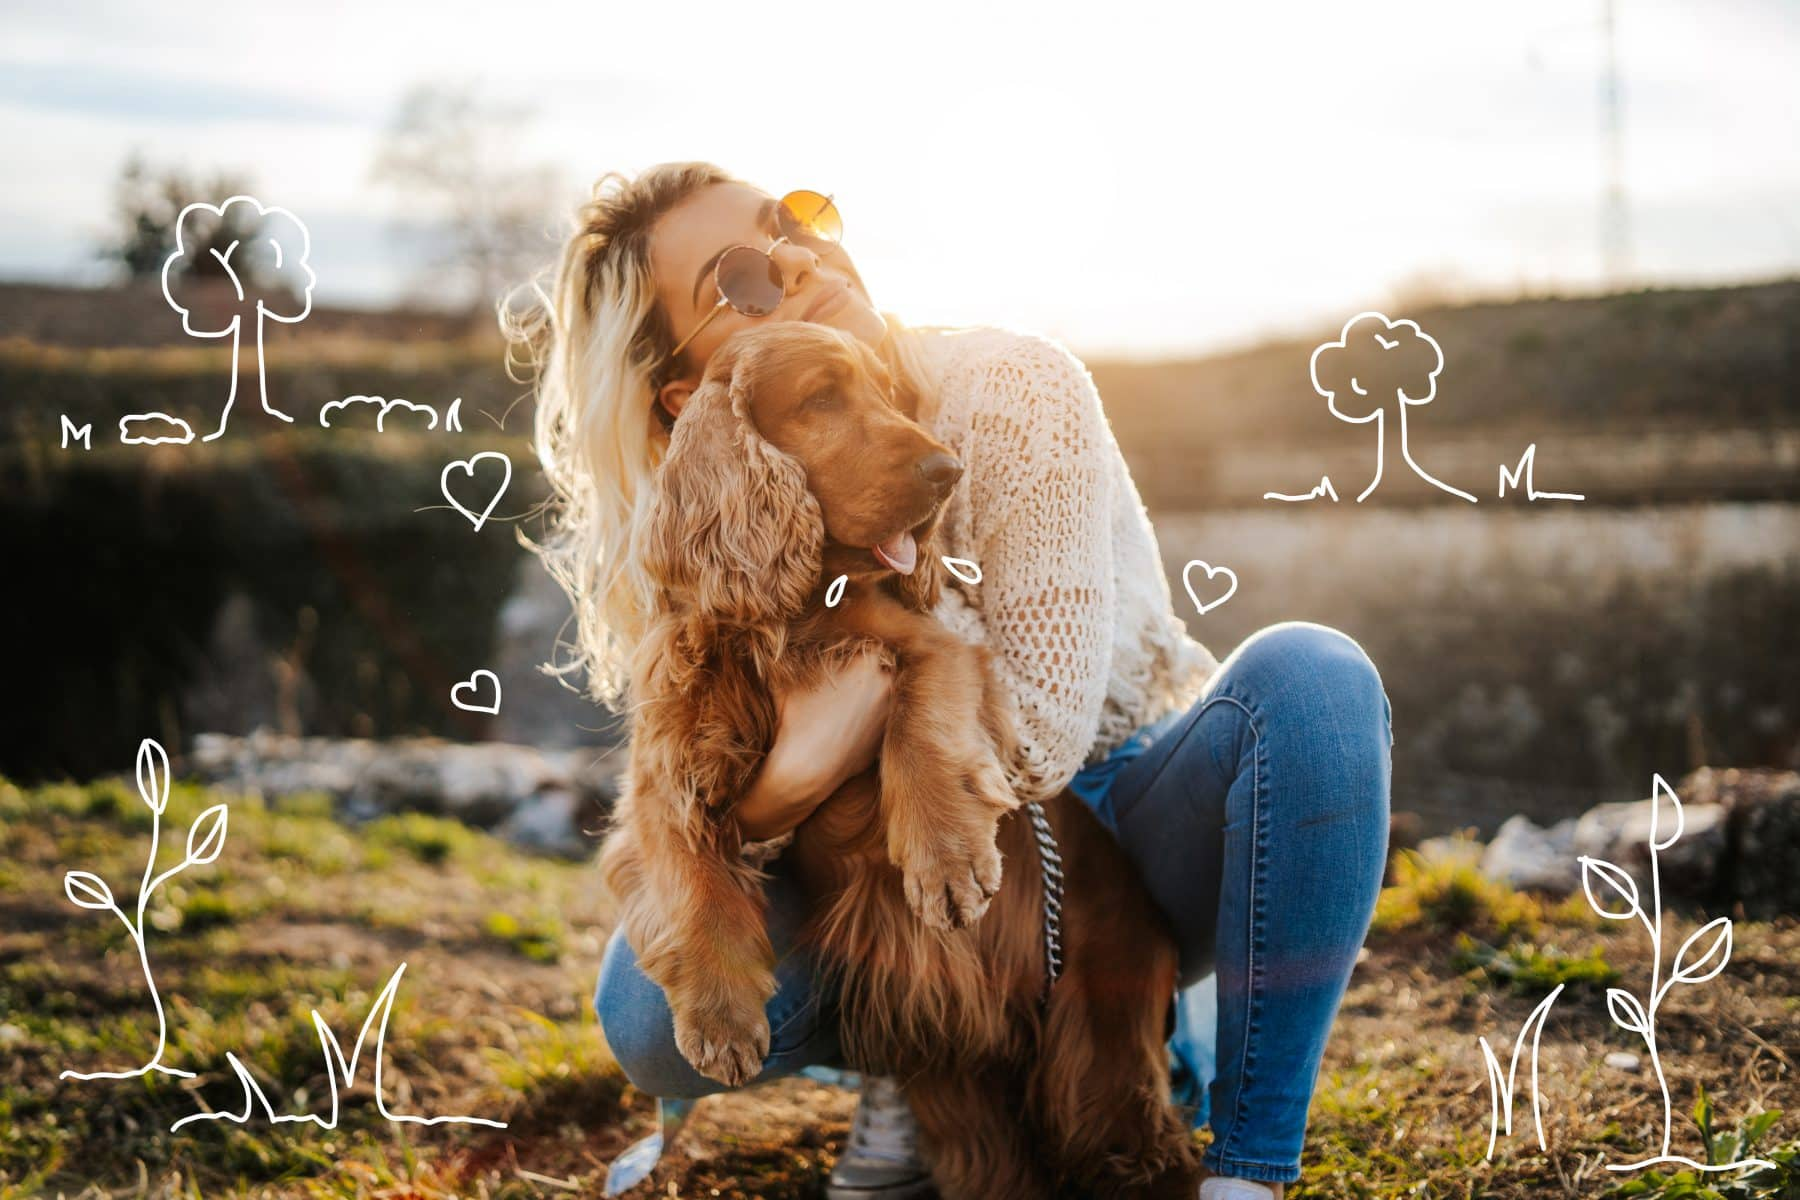 Dog grooming tips - how to groom your dog. A woman cuddles a spaniel.